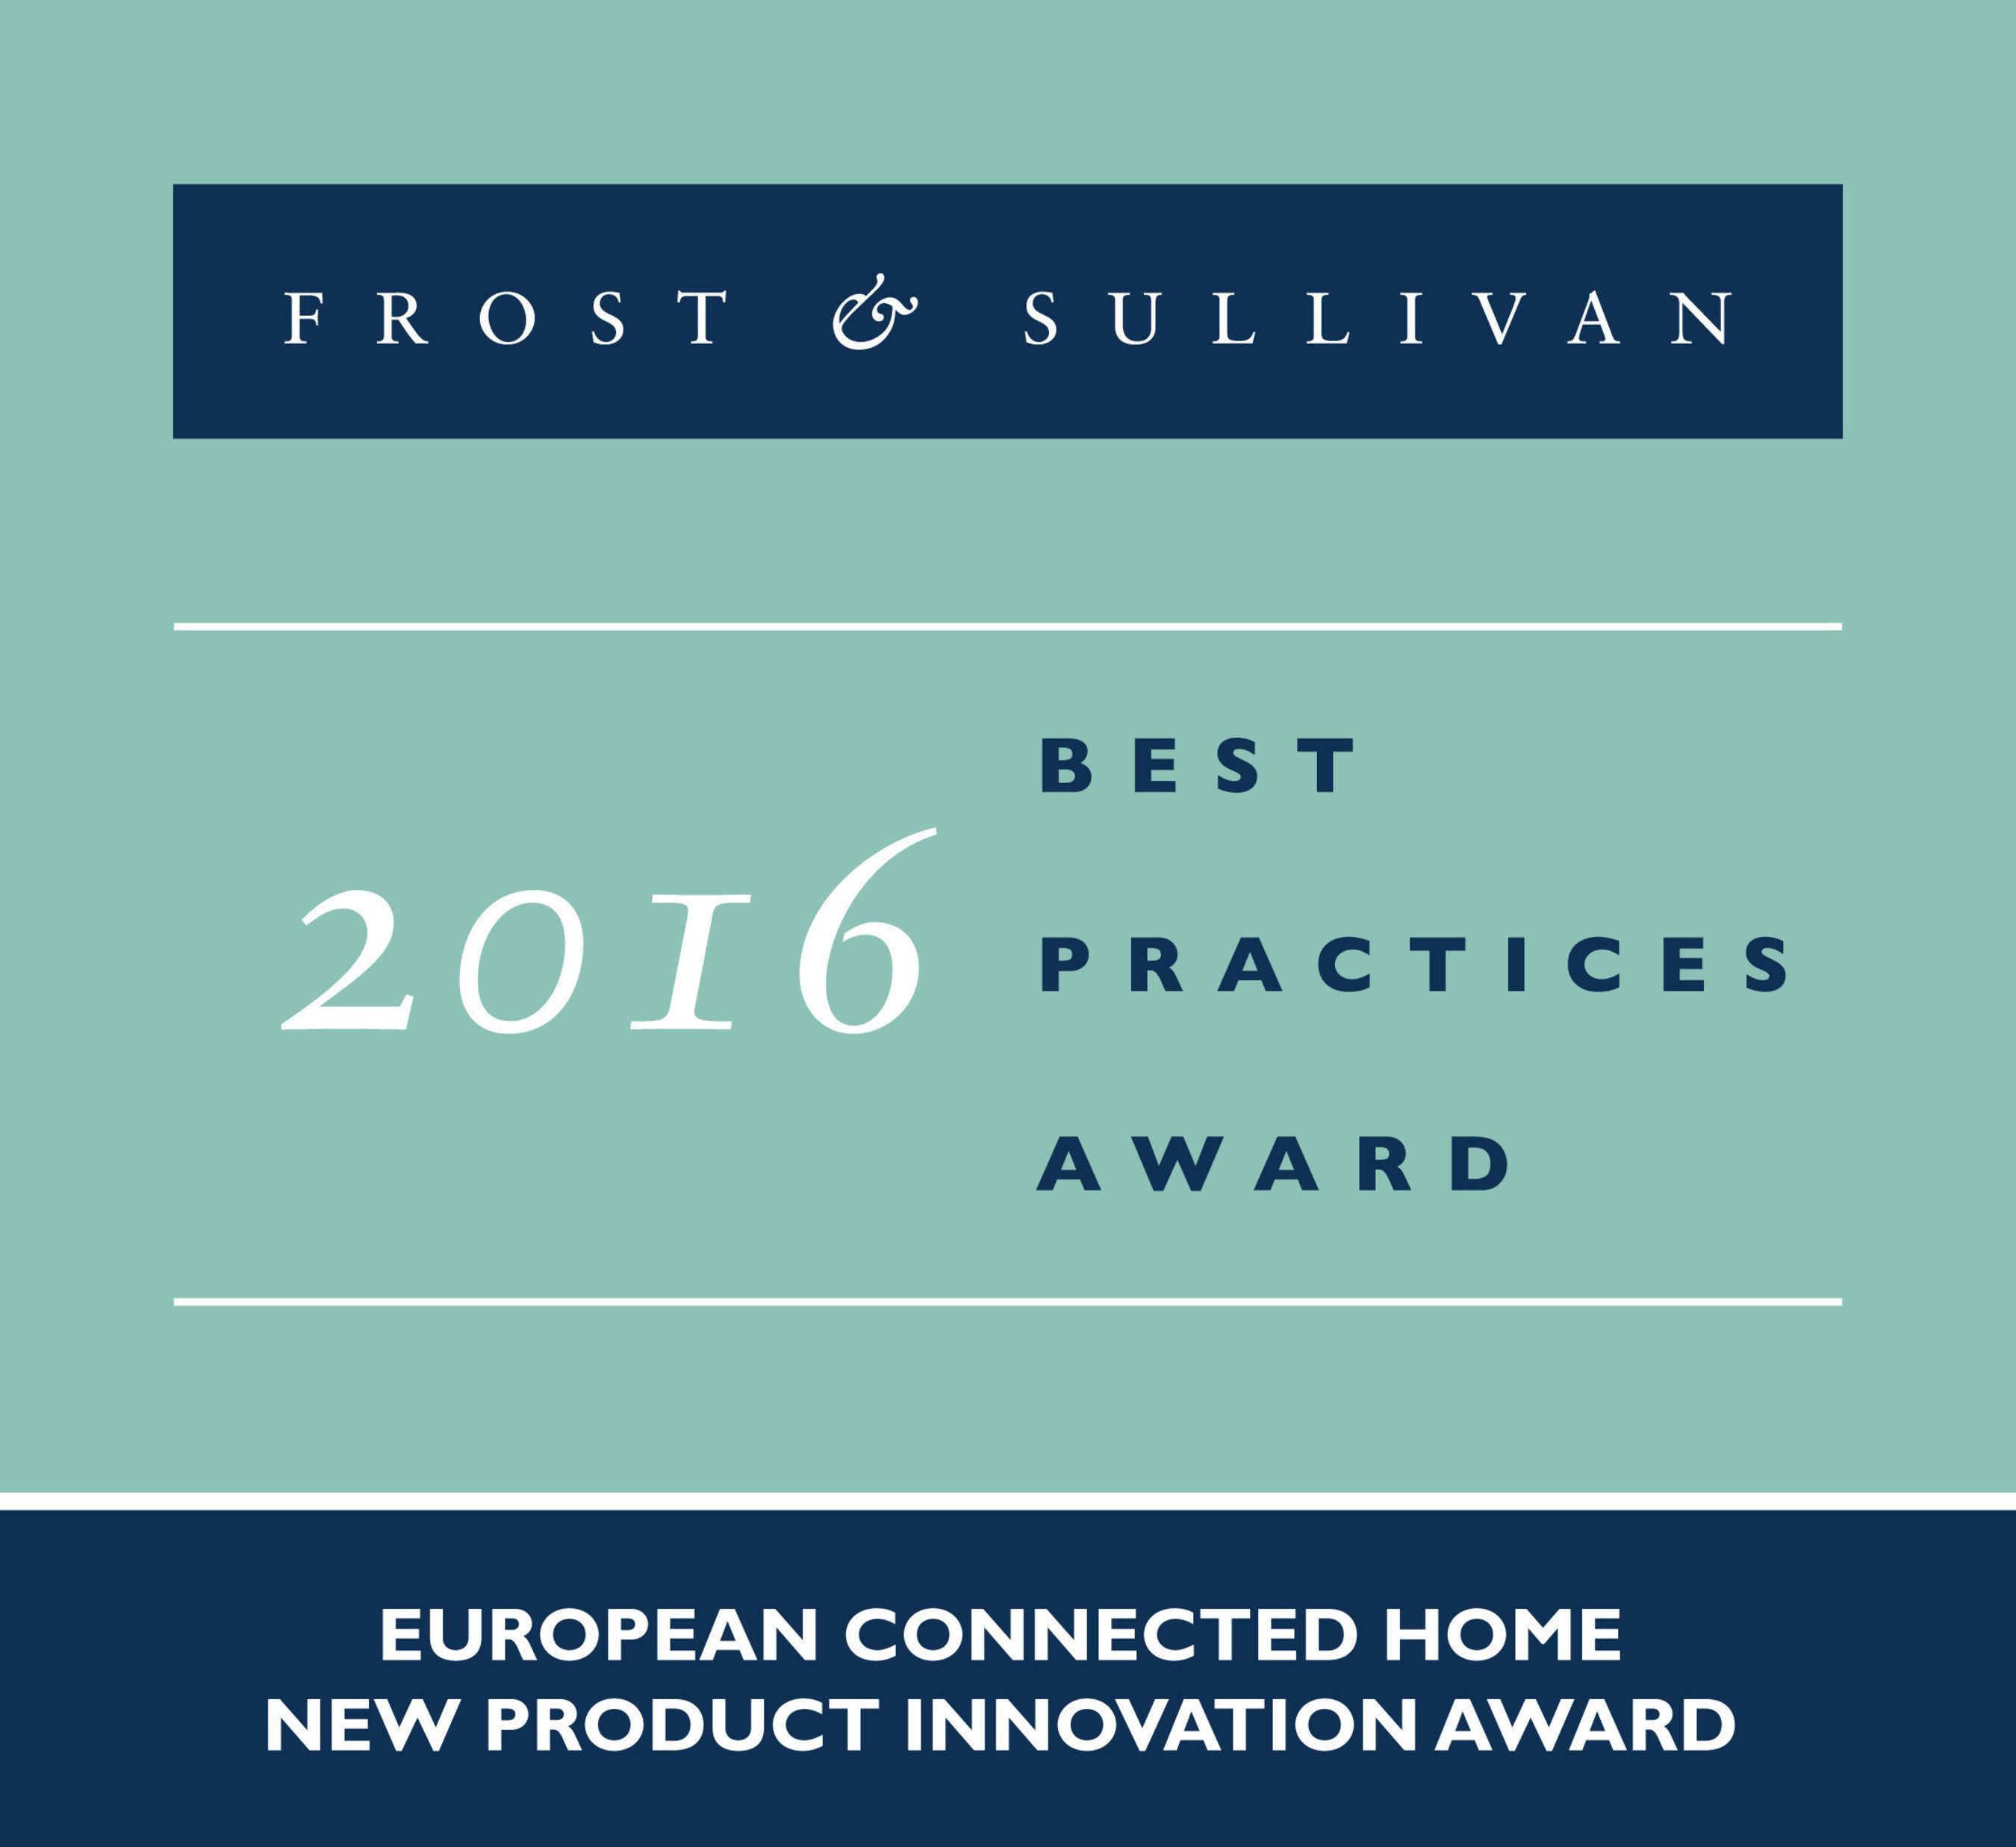 Frost & Sullivan Applauds Deutsche Telekom's Breakthrough Innovation for the European Connected Home Market, the QIVICON Smart Home Platform